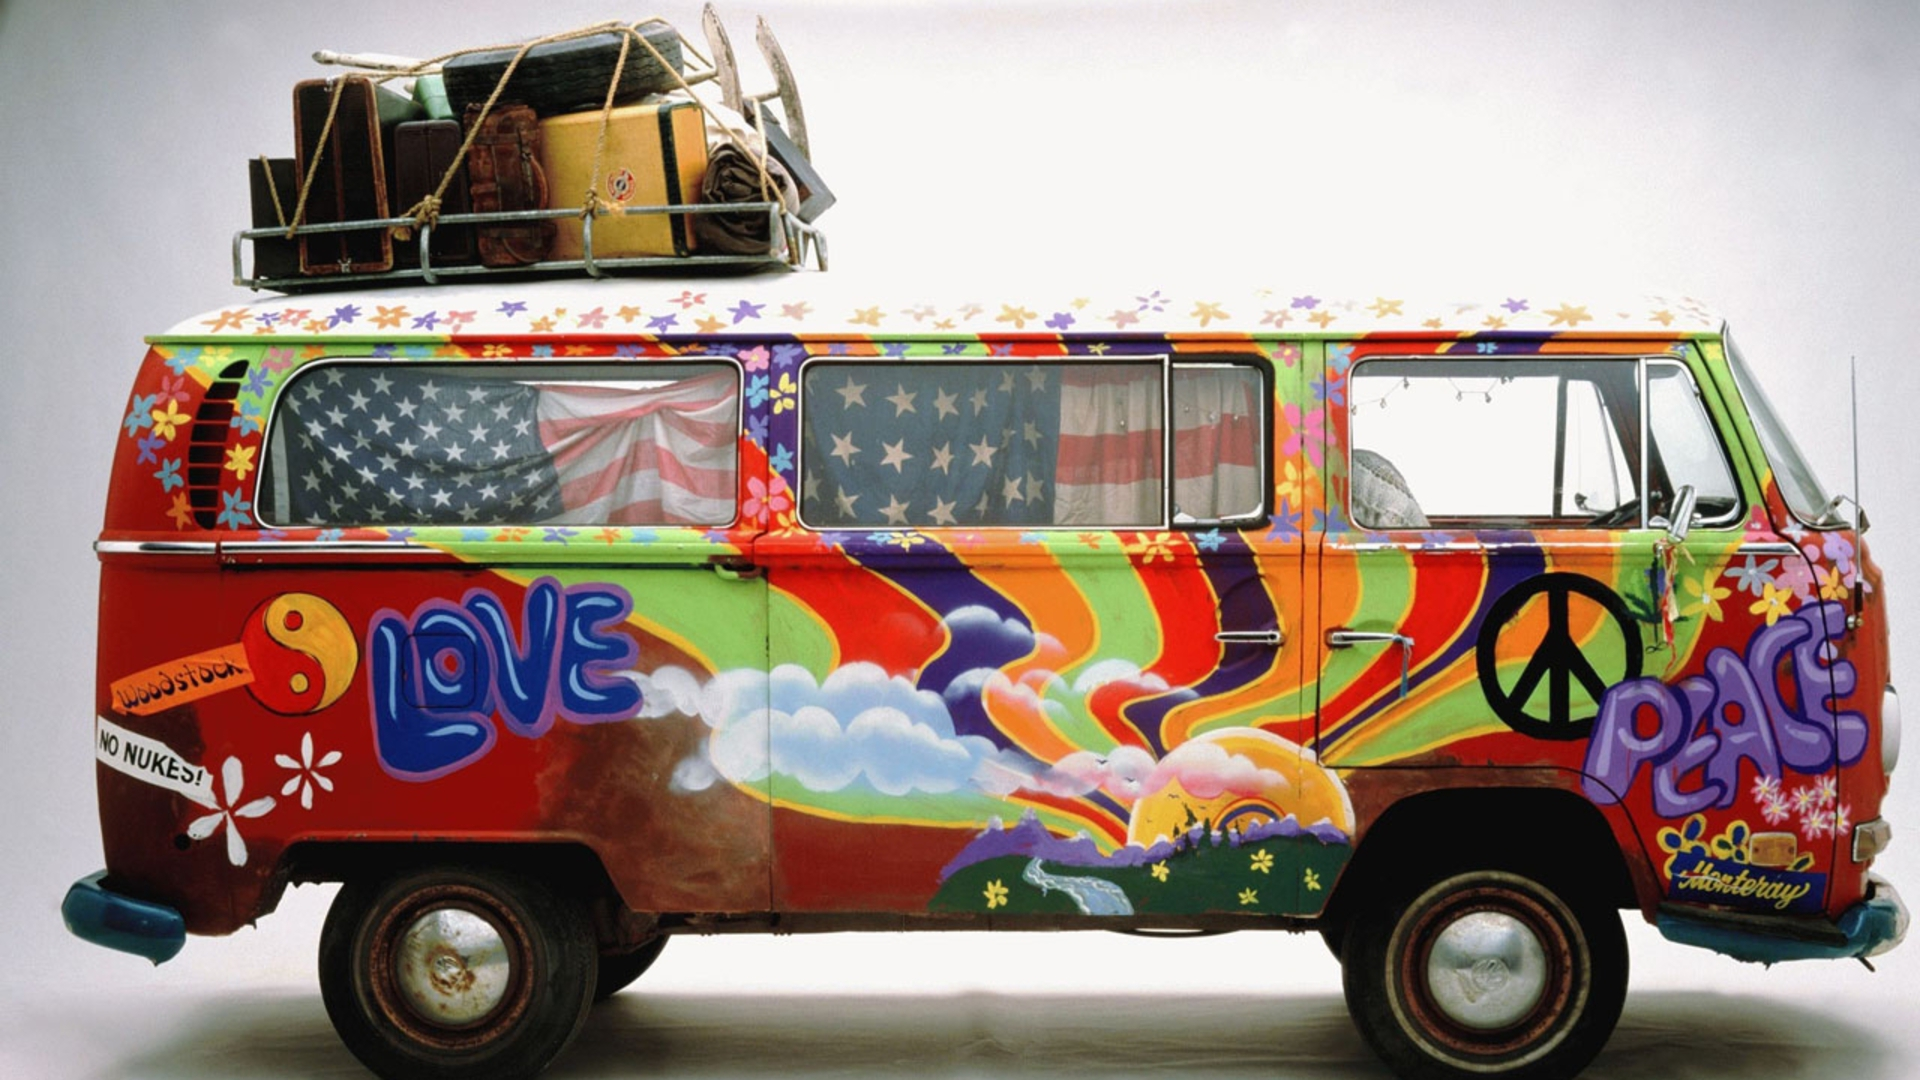 Volkswagen-Van-Hippie-Cool-Wallpaper-CVG.jpg